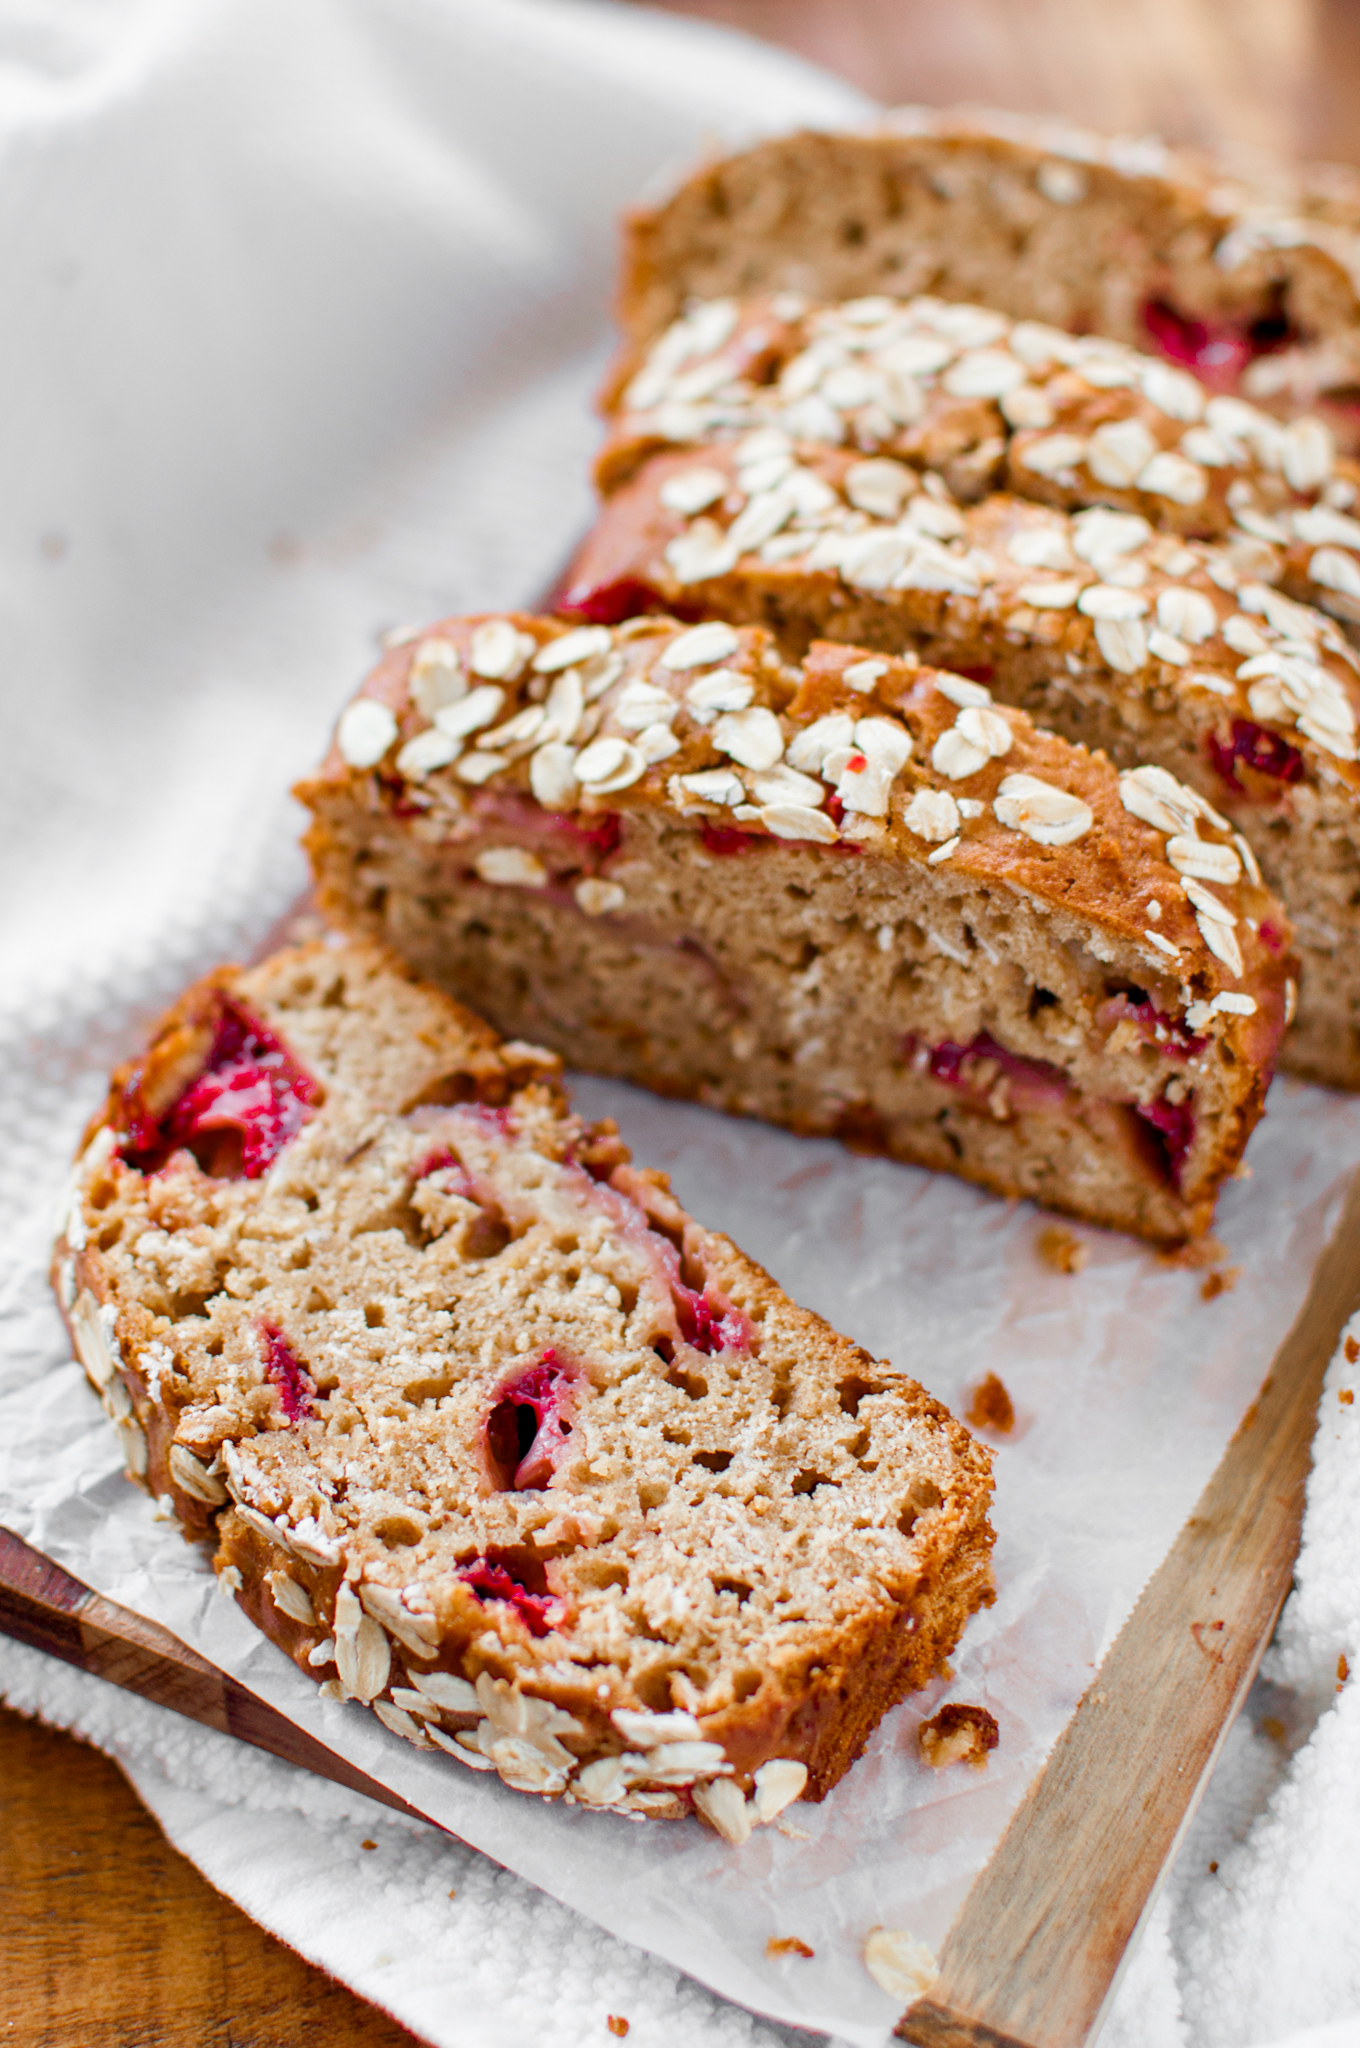 Strawberry Oat Bread- a healthy alternative that's perfectly sweet and made without any butter!